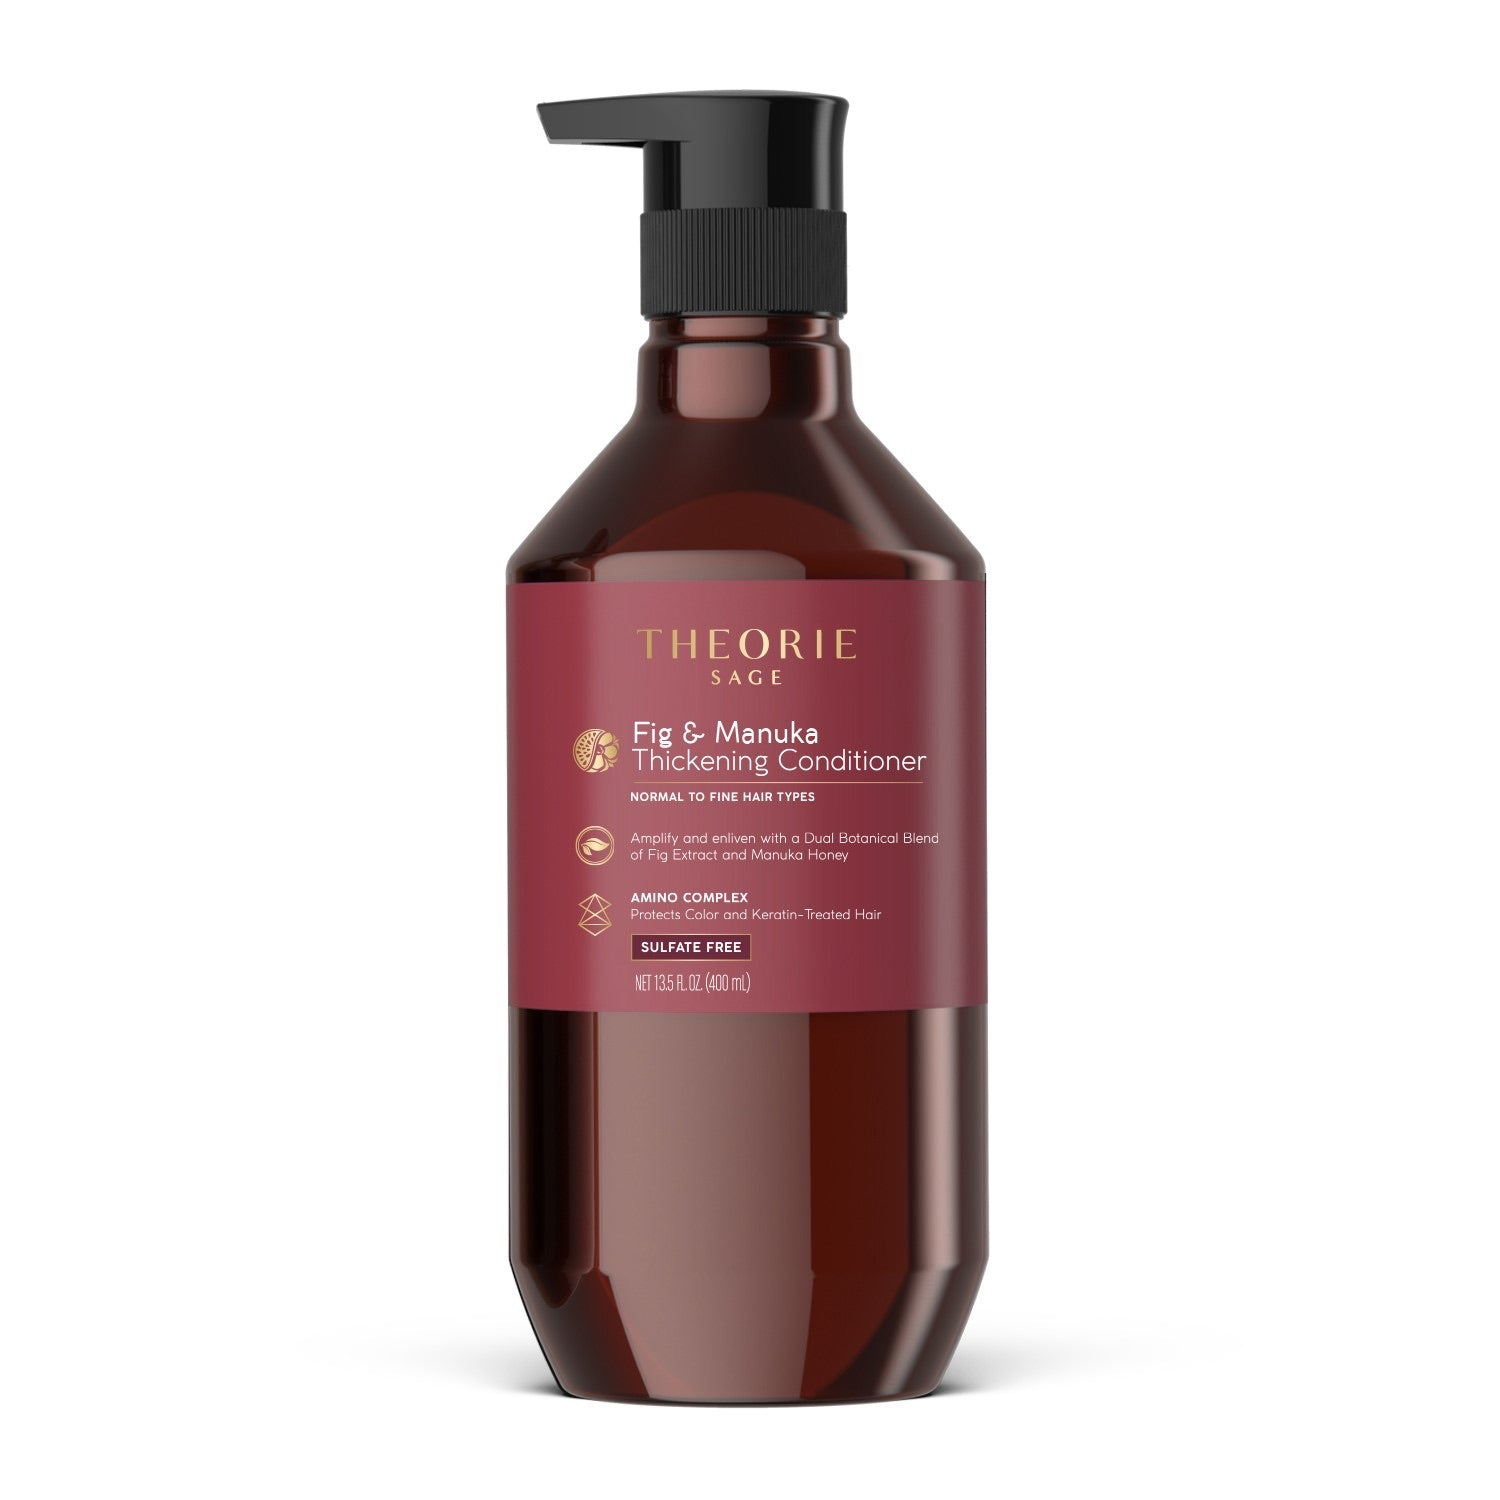 Fig & Manuka Thickening Conditioner